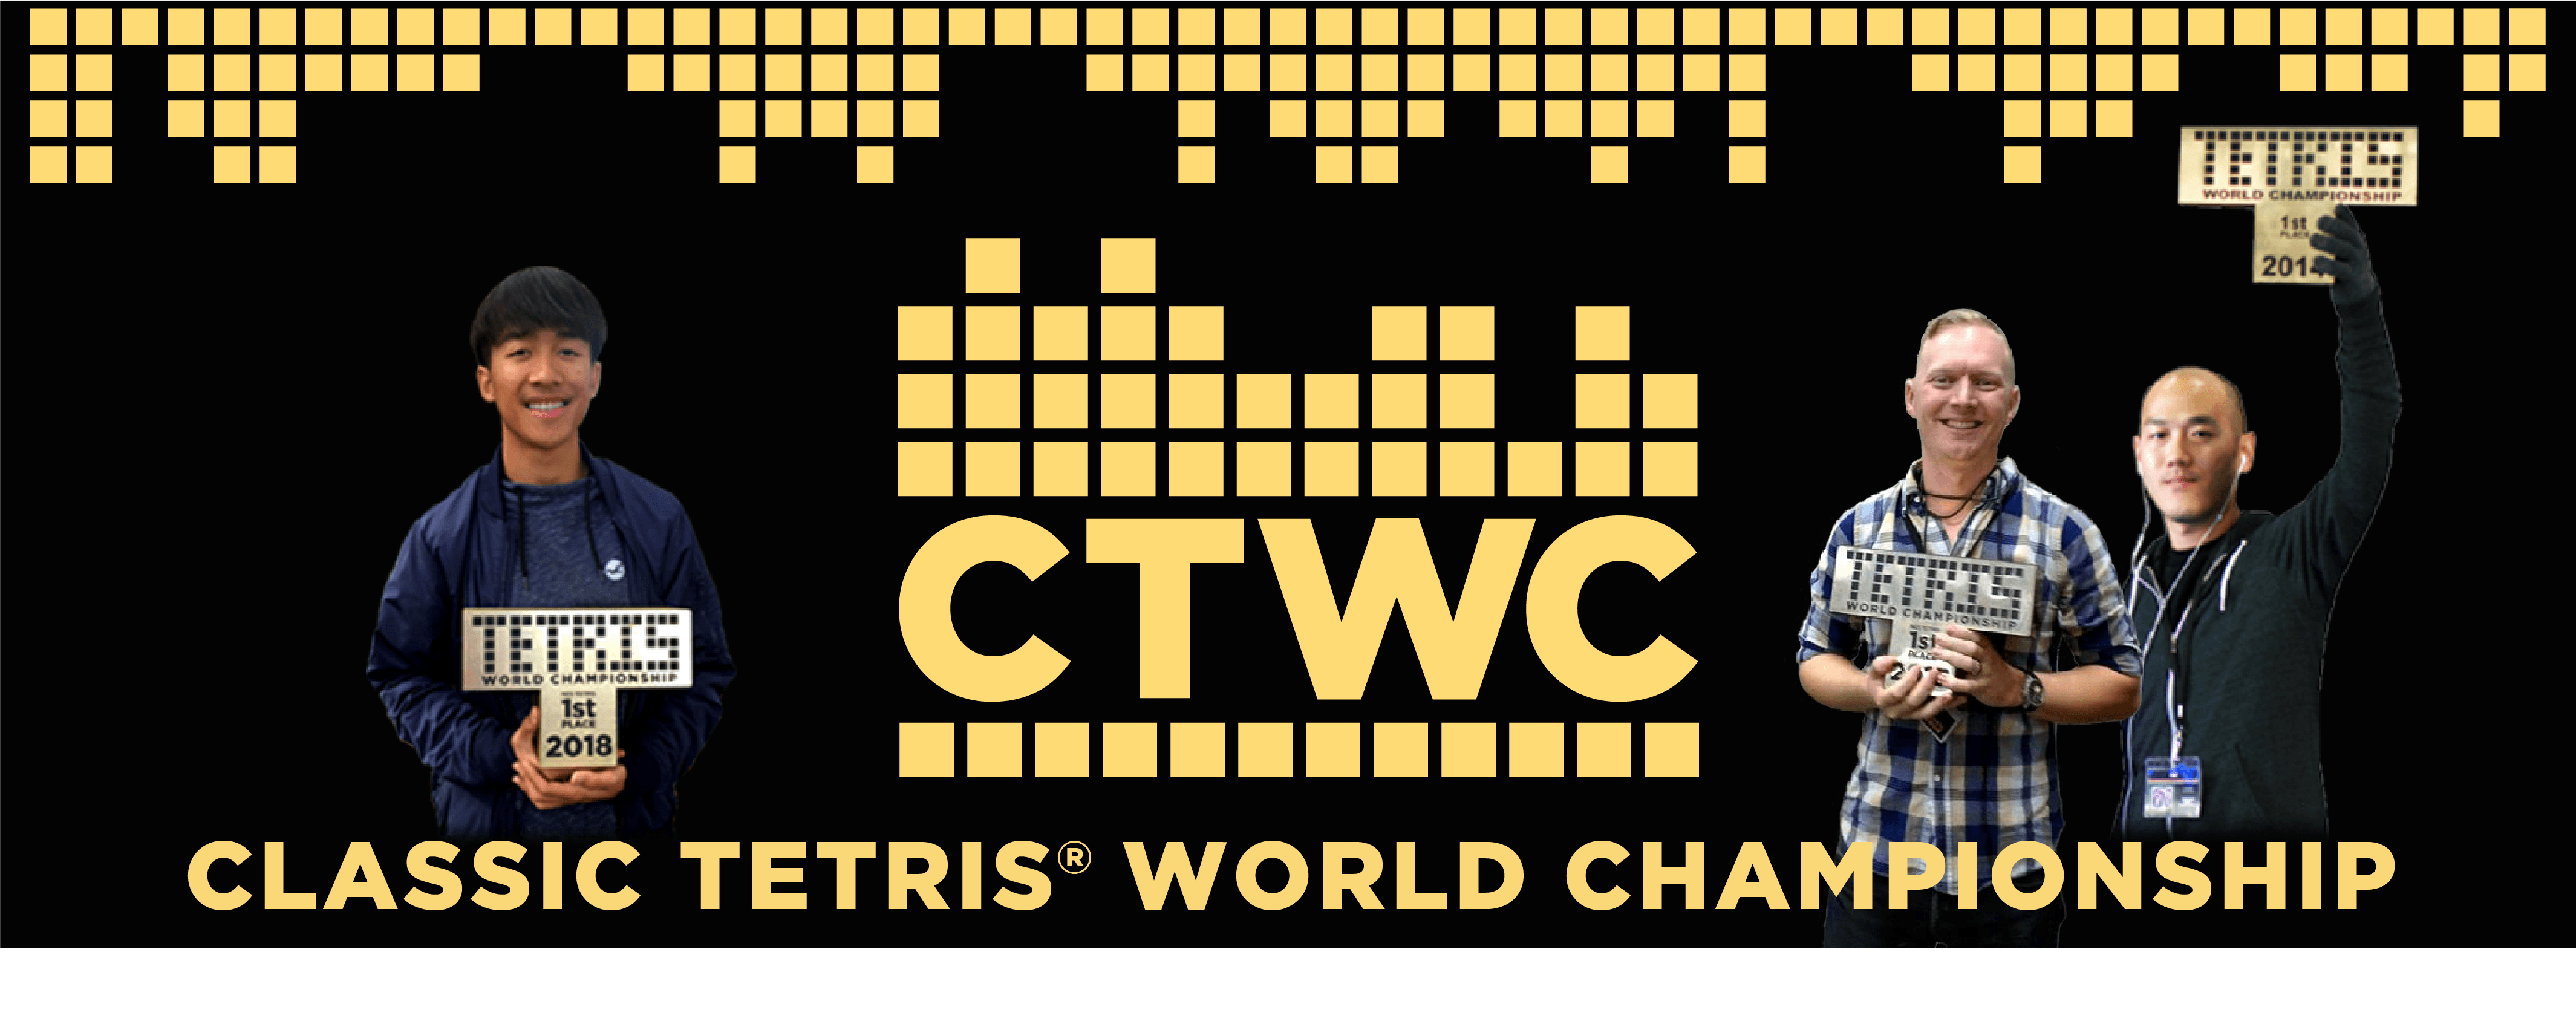 Classic Tetris World Championship Registration Opens Sept 1st